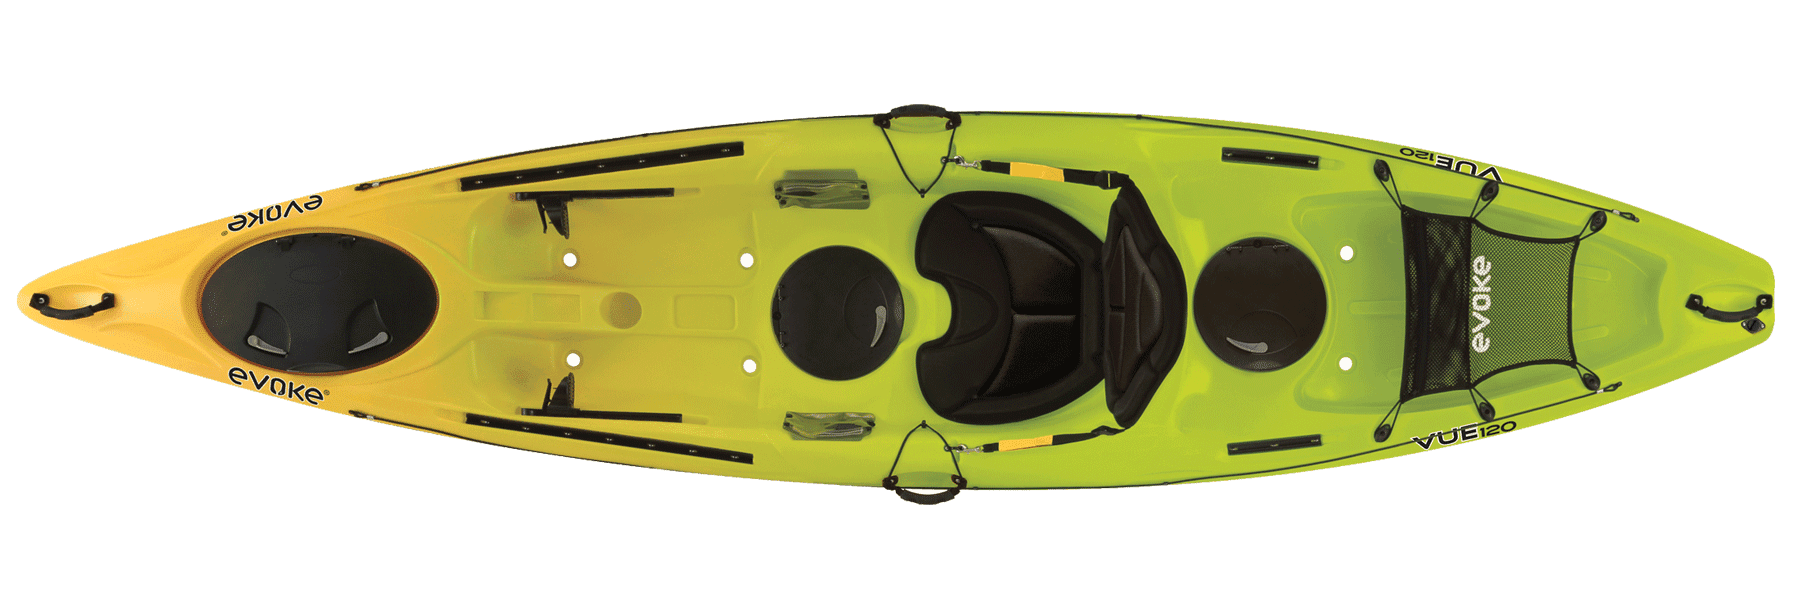 Vue 100 Sit on Kayak